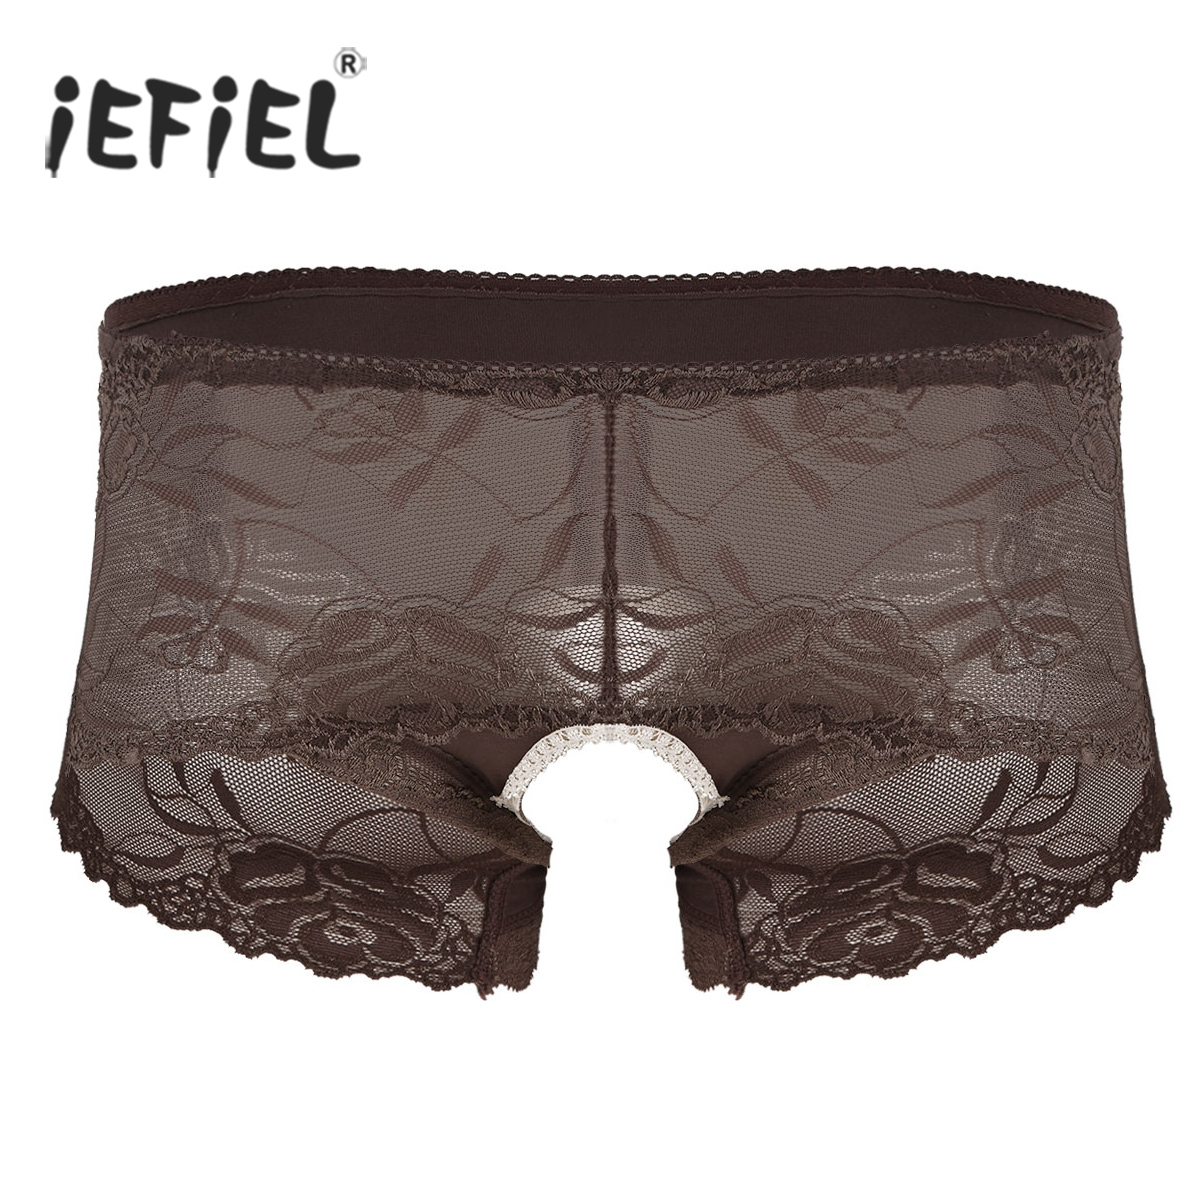 Sexy Mens Sissy Gay Male Panties High Waisted See Though Sheer Ruffle Lace Bikini Briefs Stretch Open Butt Triangle Underwear